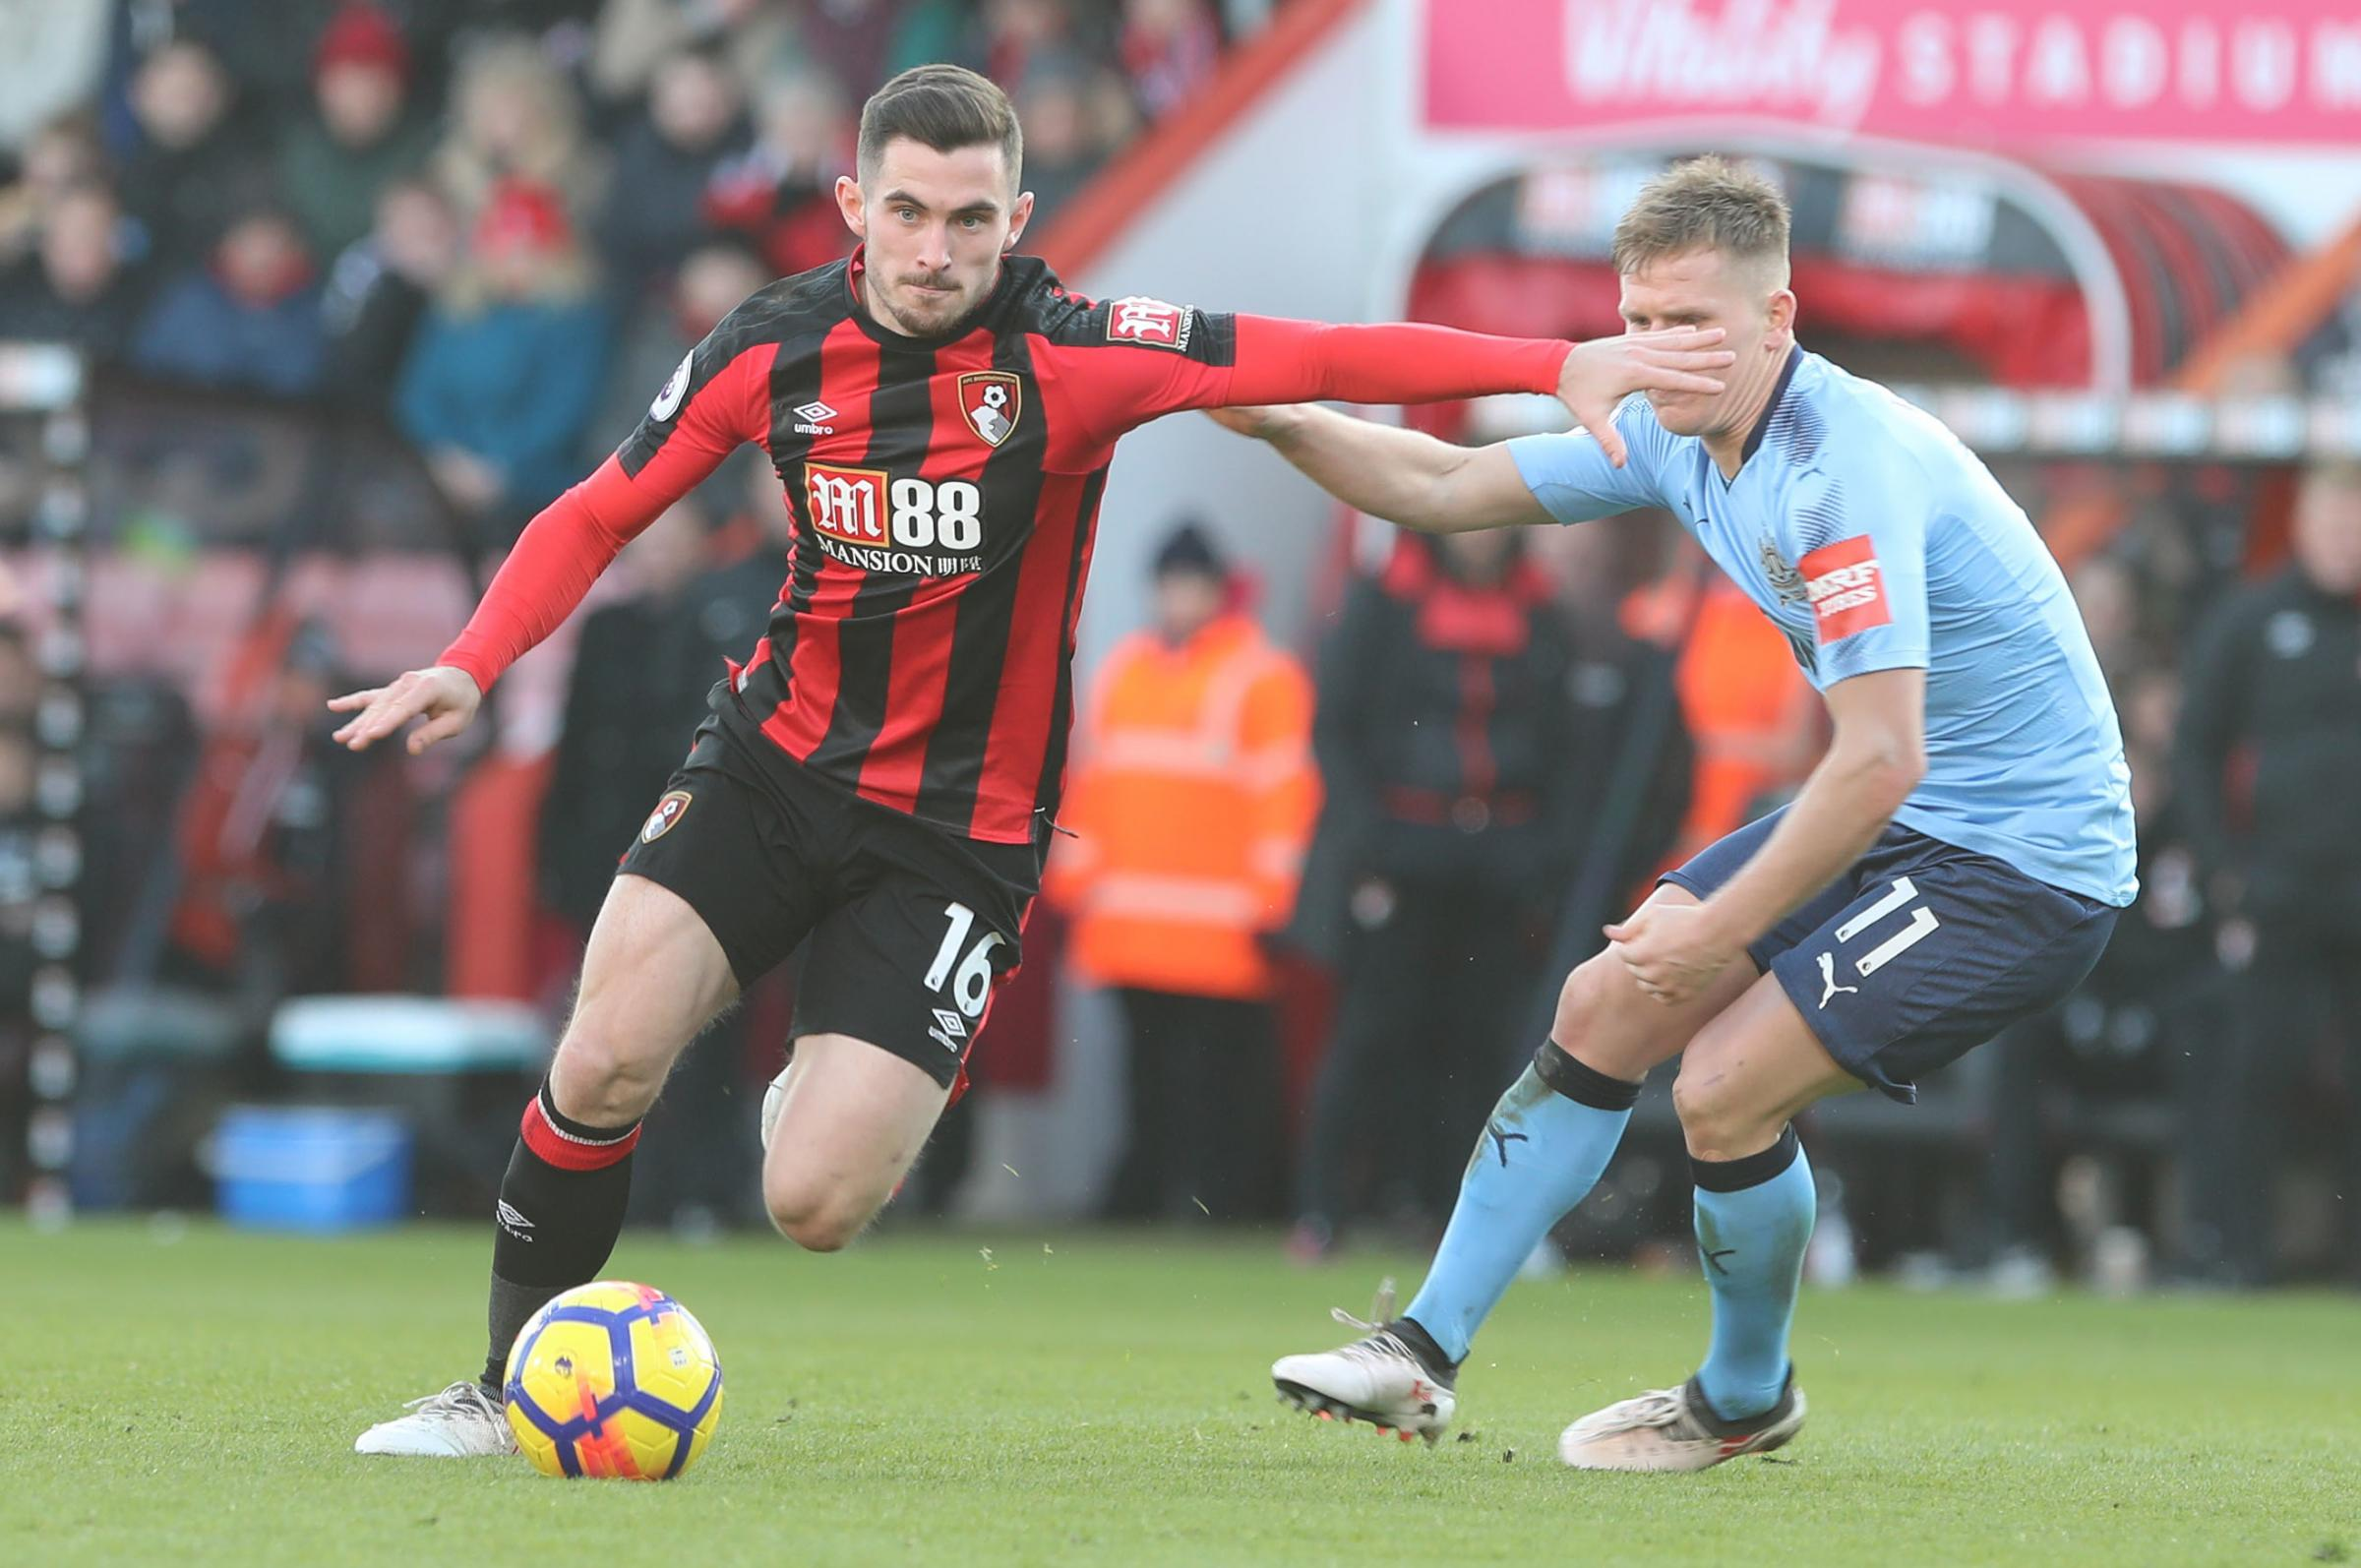 'He's such a popular member of the squad' - Lewis Cook's return to training has been a 'big lift' says Eddie Howe